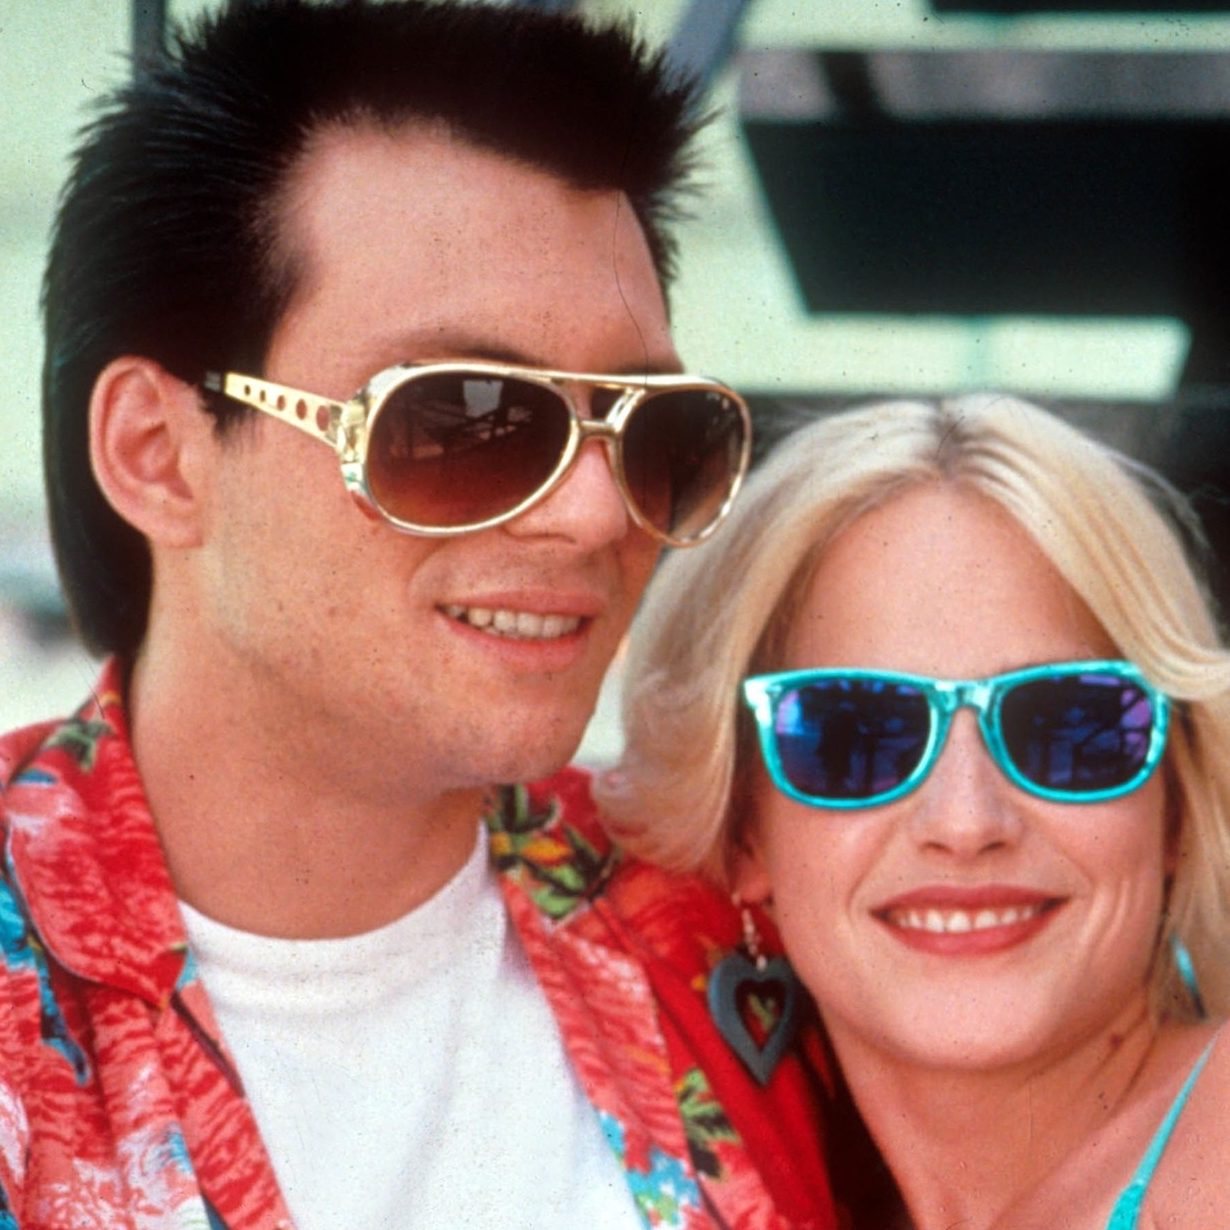 AbcMFldUroZx e1600264711602 20 Things You Didn't Know About The Classic Film True Romance